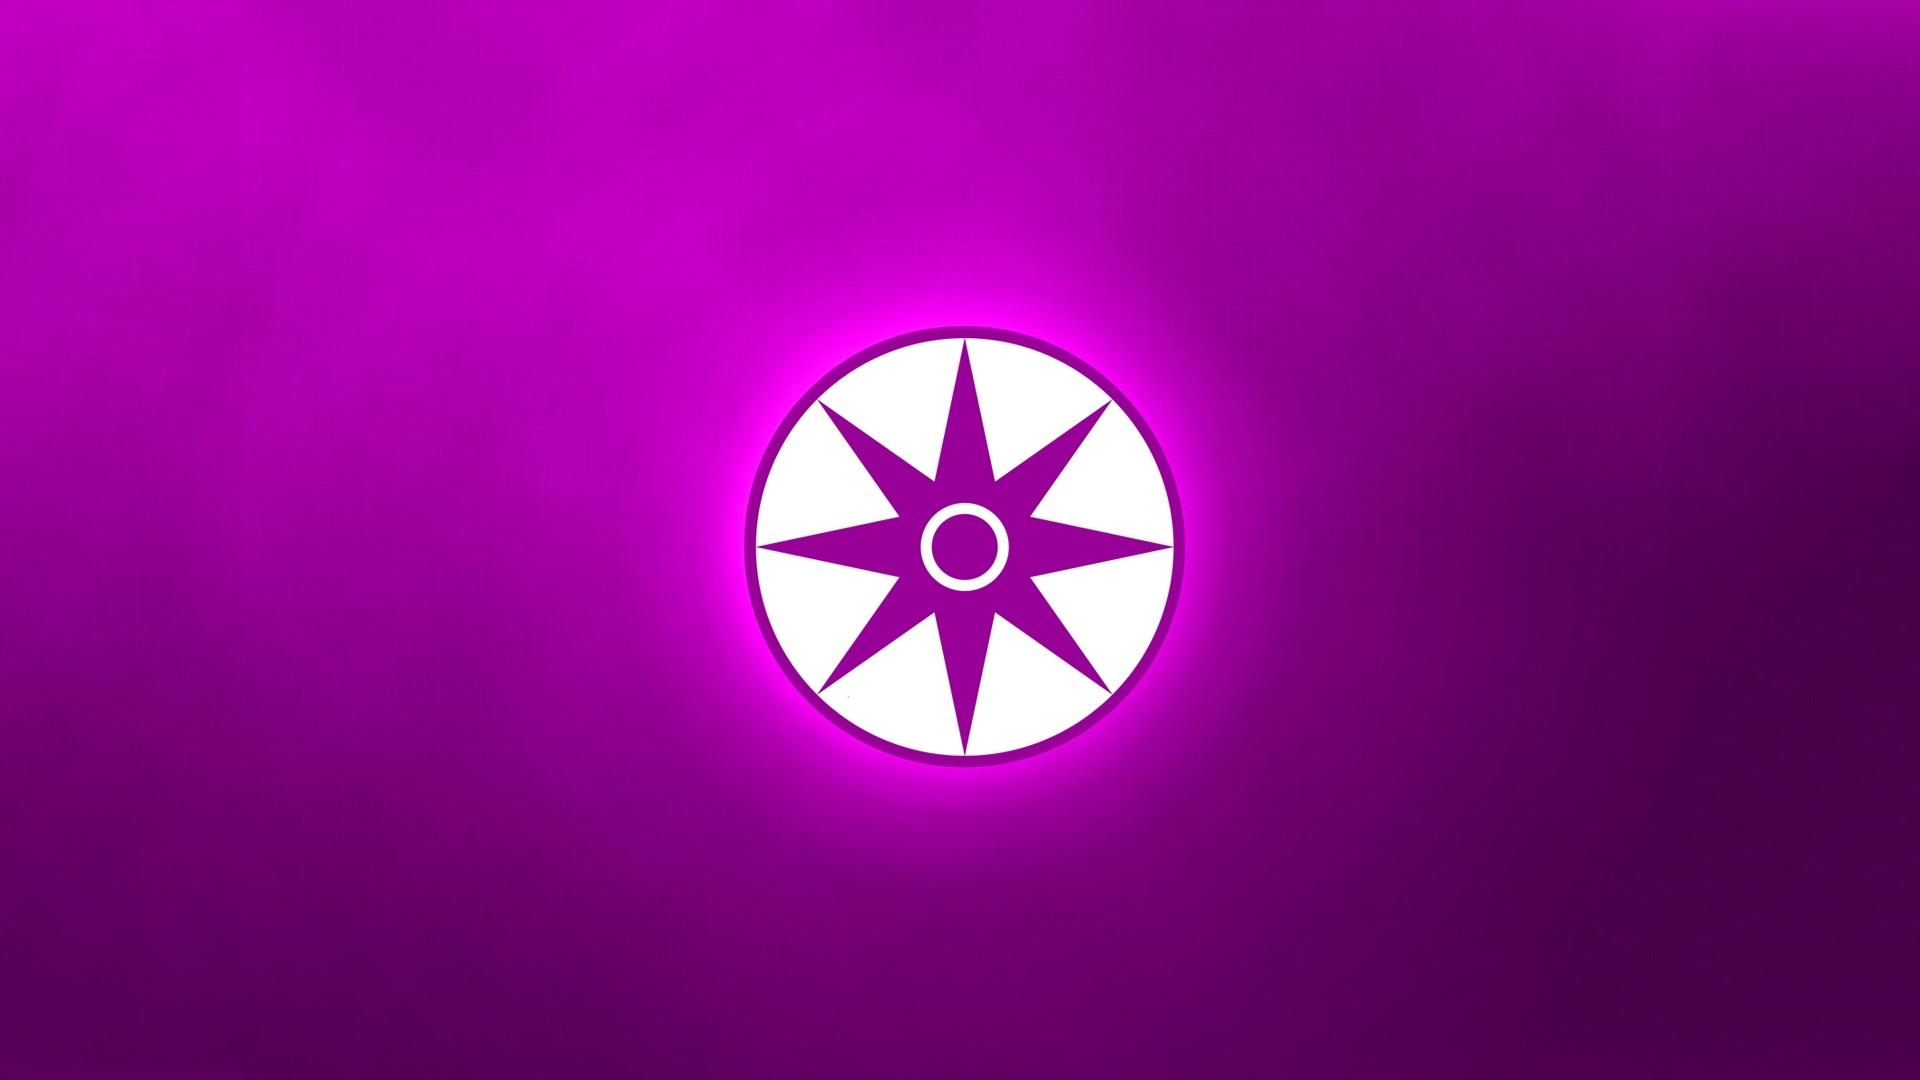 Star Sapphire Corps wallpapers HD quality